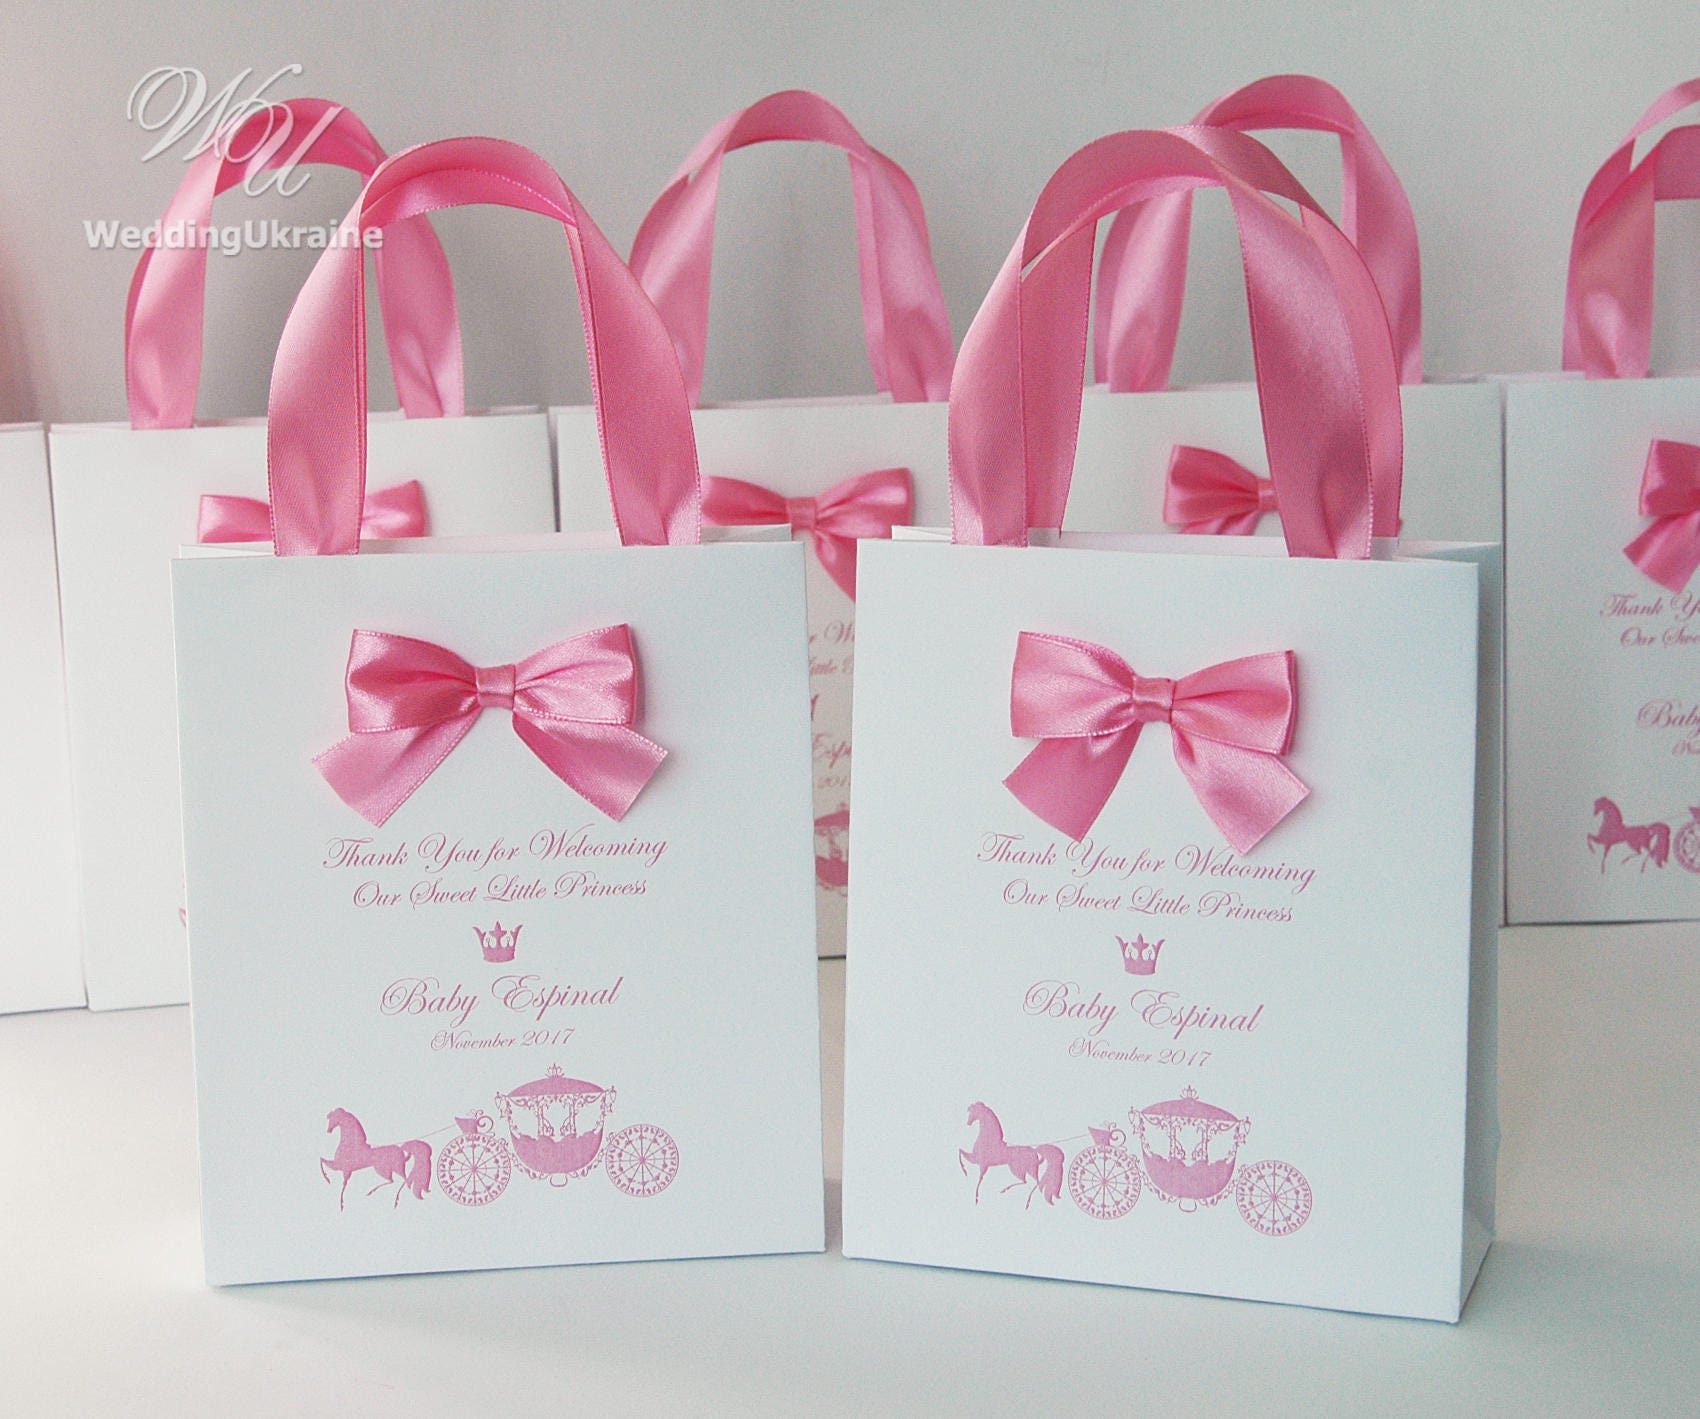 Baby shower party favor bags Elegant Welcome Bag with bow and